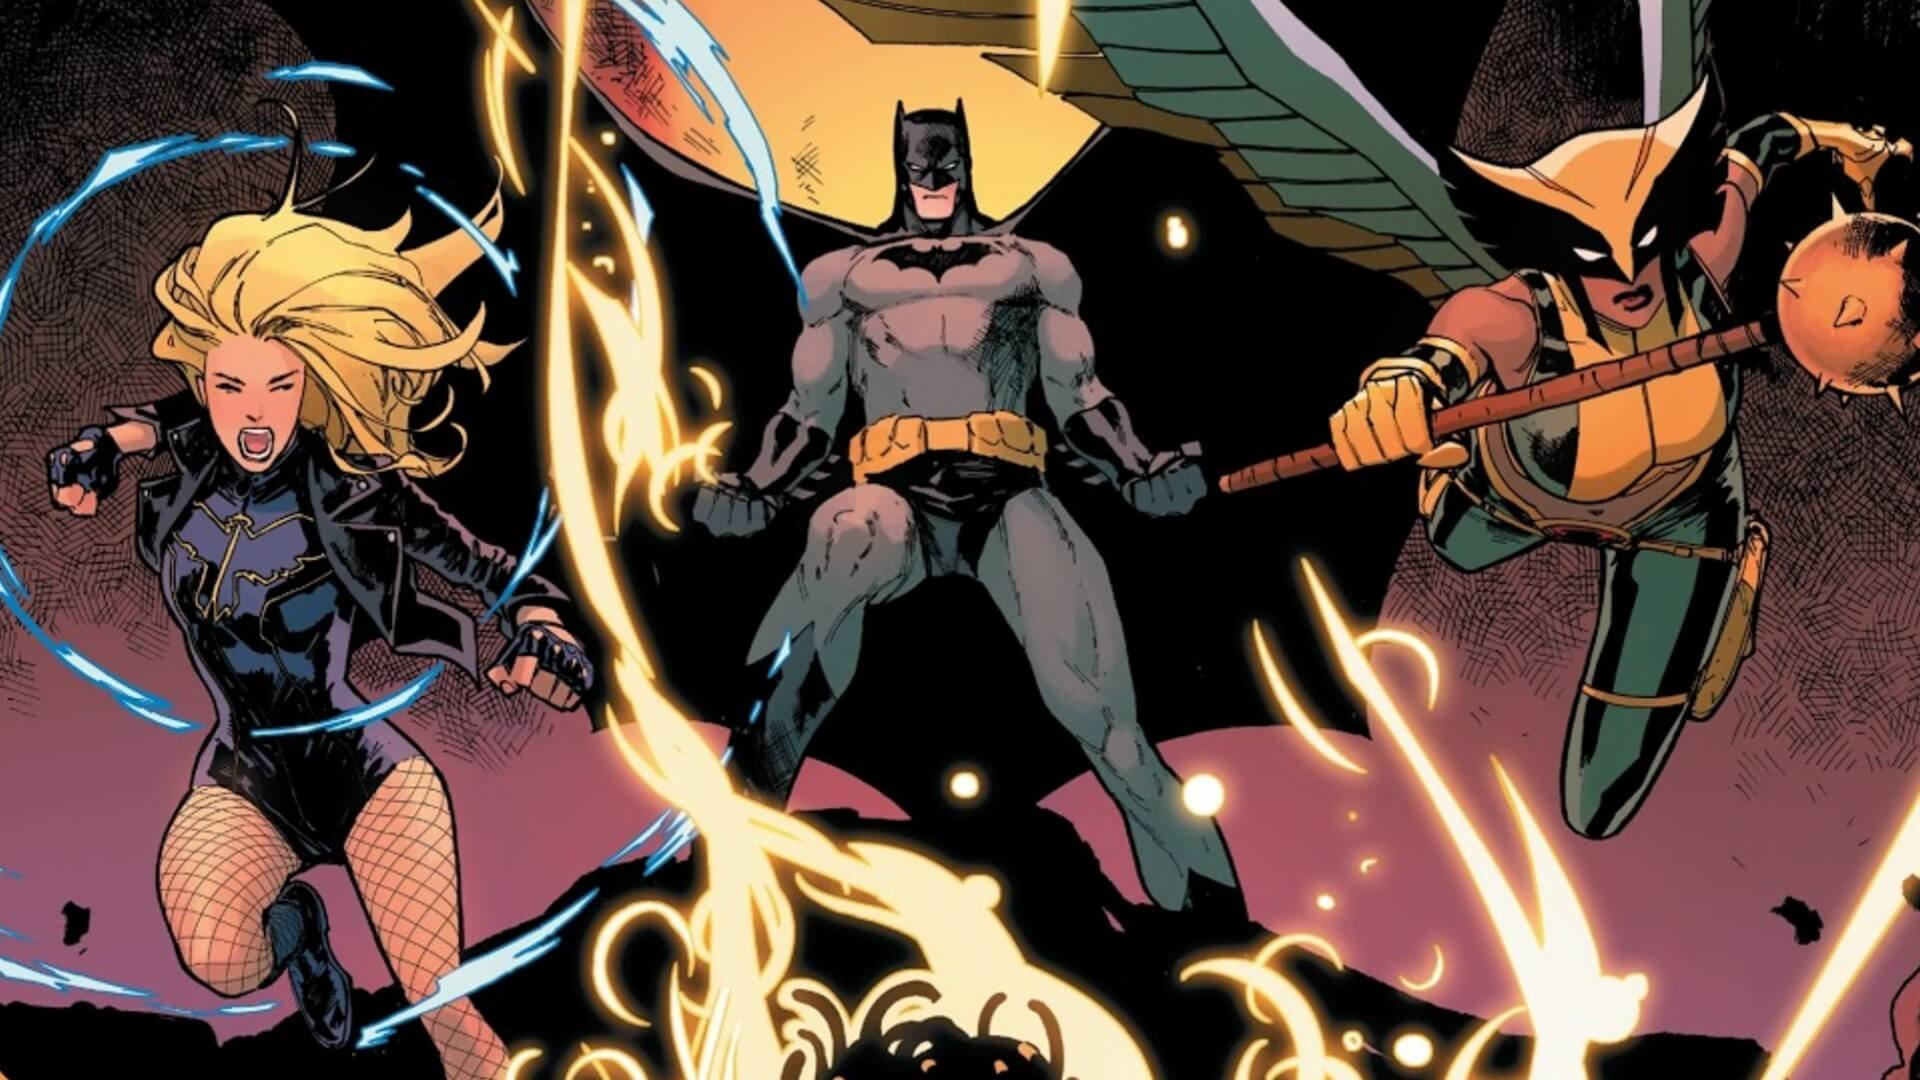 Justice League: DC's Greatest Heroes Get New Powers in Latest Issue